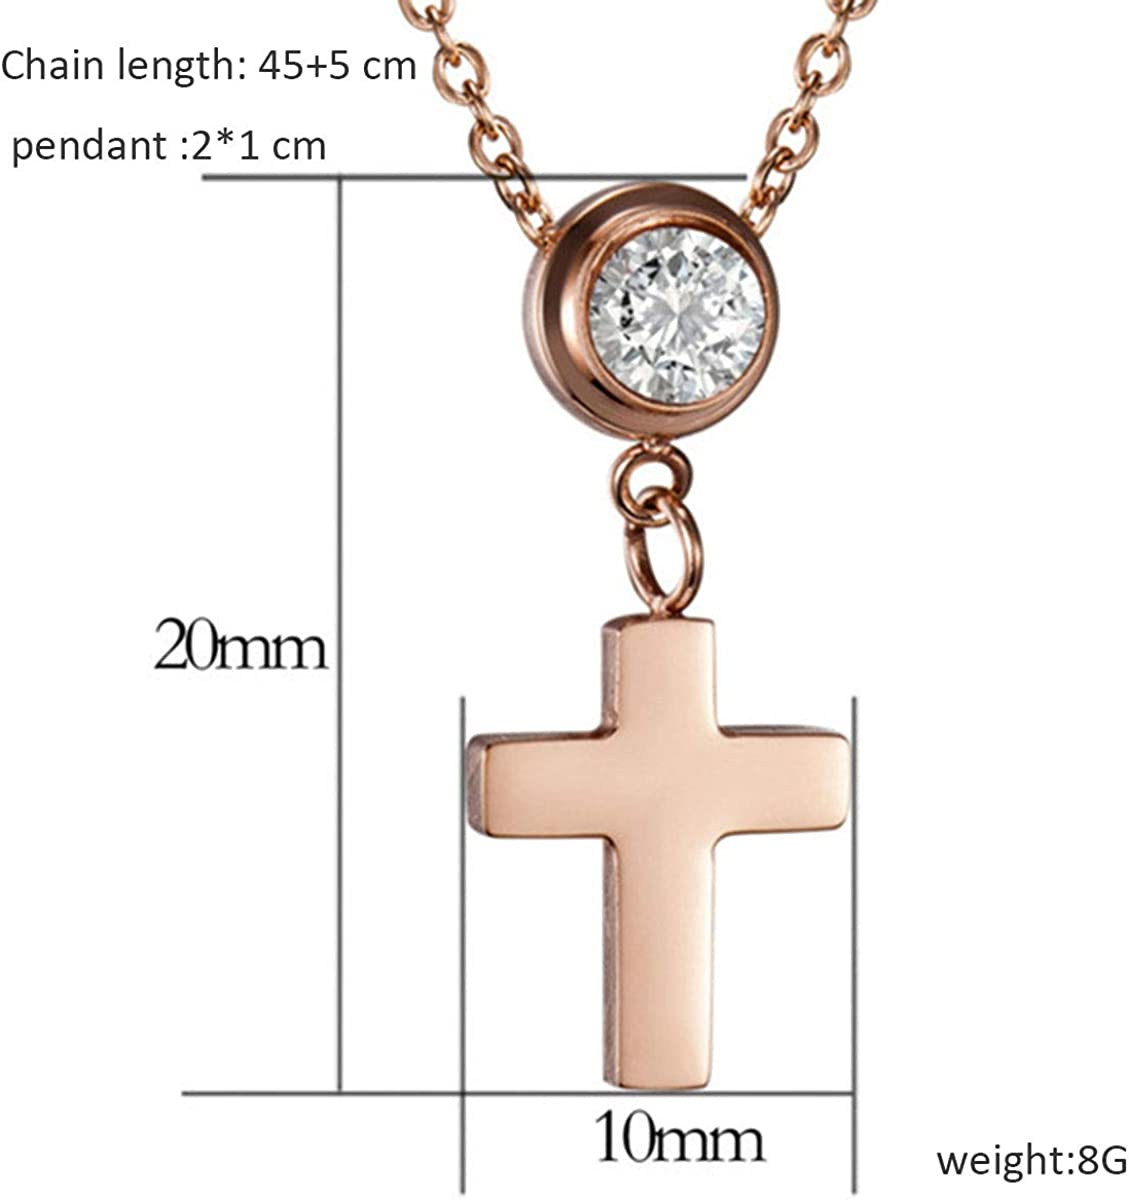 Xiausyang 18-Karat Rose Gold Plated Cross for Lovers Titanium Steel Collarbone Zircon Necklace for Lovers Necklace y798